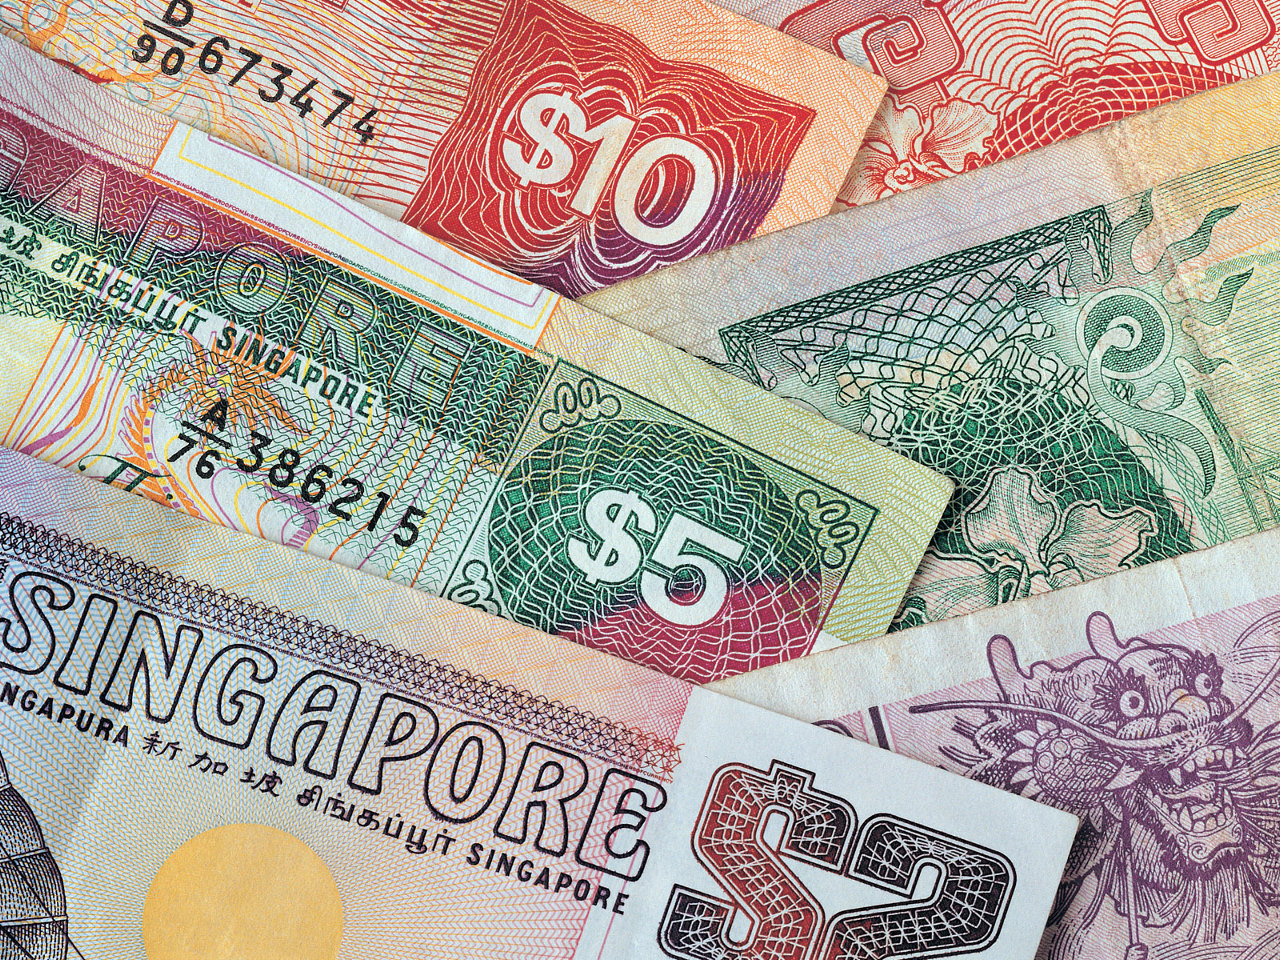 singapores economy Singapore has the 36th largest economy in the world  the gross domestic product (gdp) of singapore is $29274 (usd billion) and its growth was 201% from 2014 to 2015 its highest gdp was recorded in 2014 and its average gdp in the last 10 years is $24127 (usd billion.